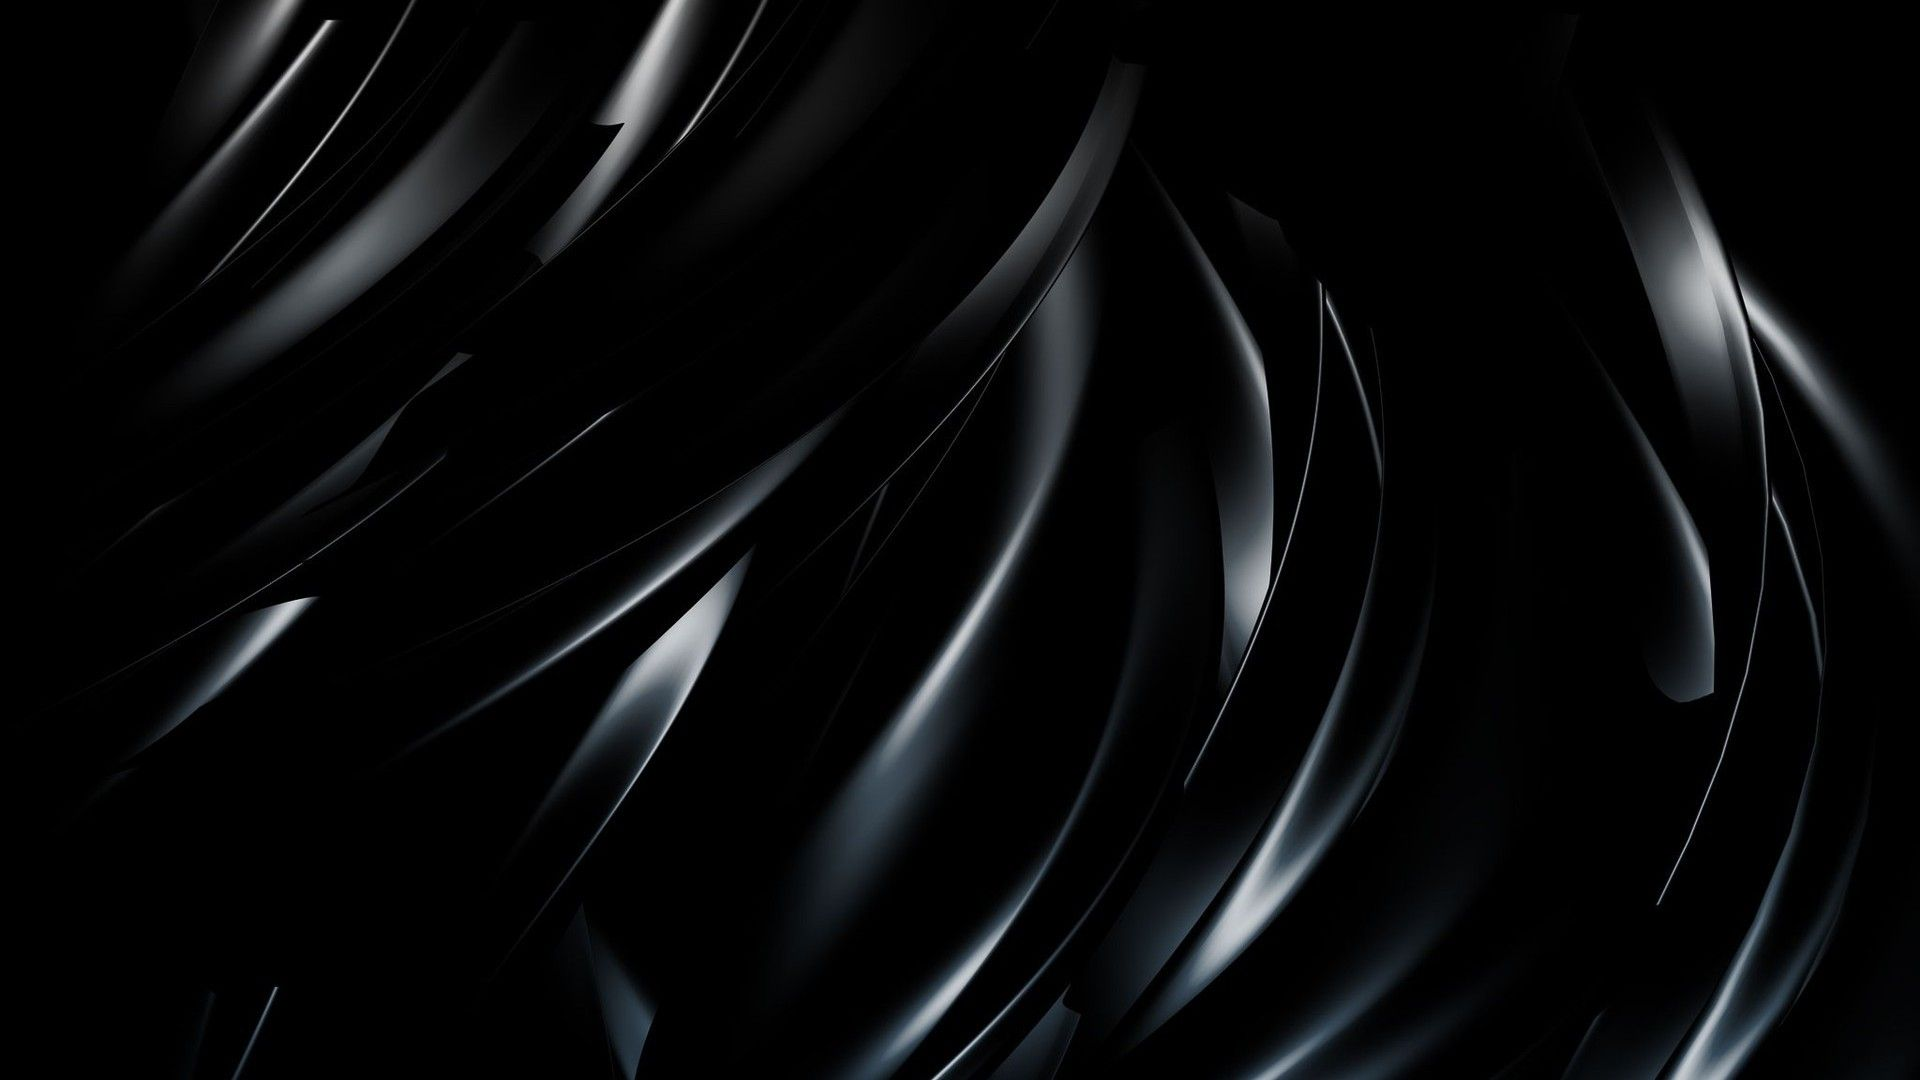 Background Black Abstract Wallpaper Hd